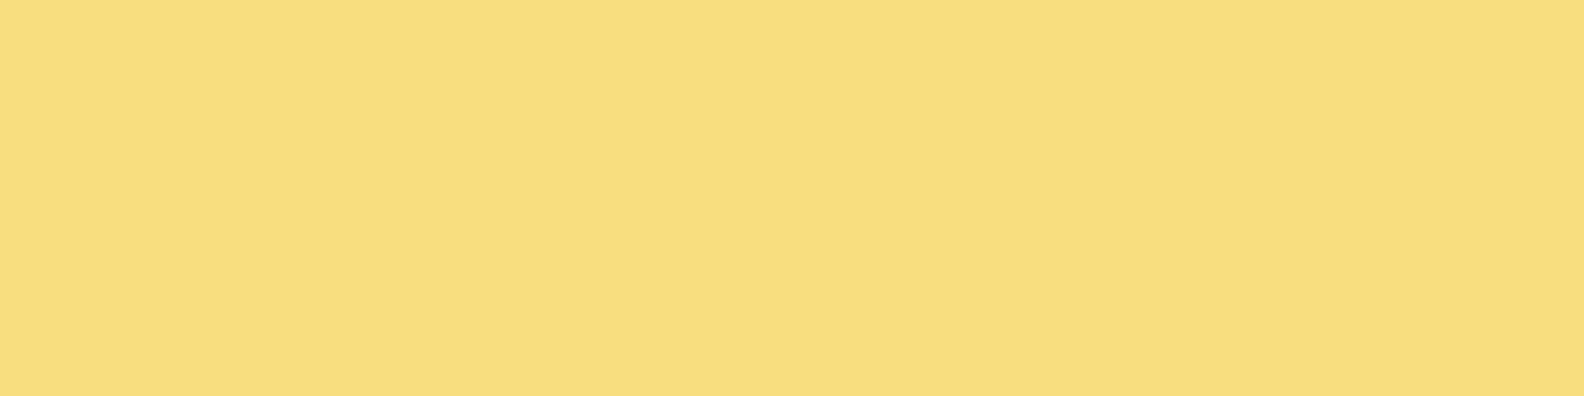 1584x396 Mellow Yellow Solid Color Background